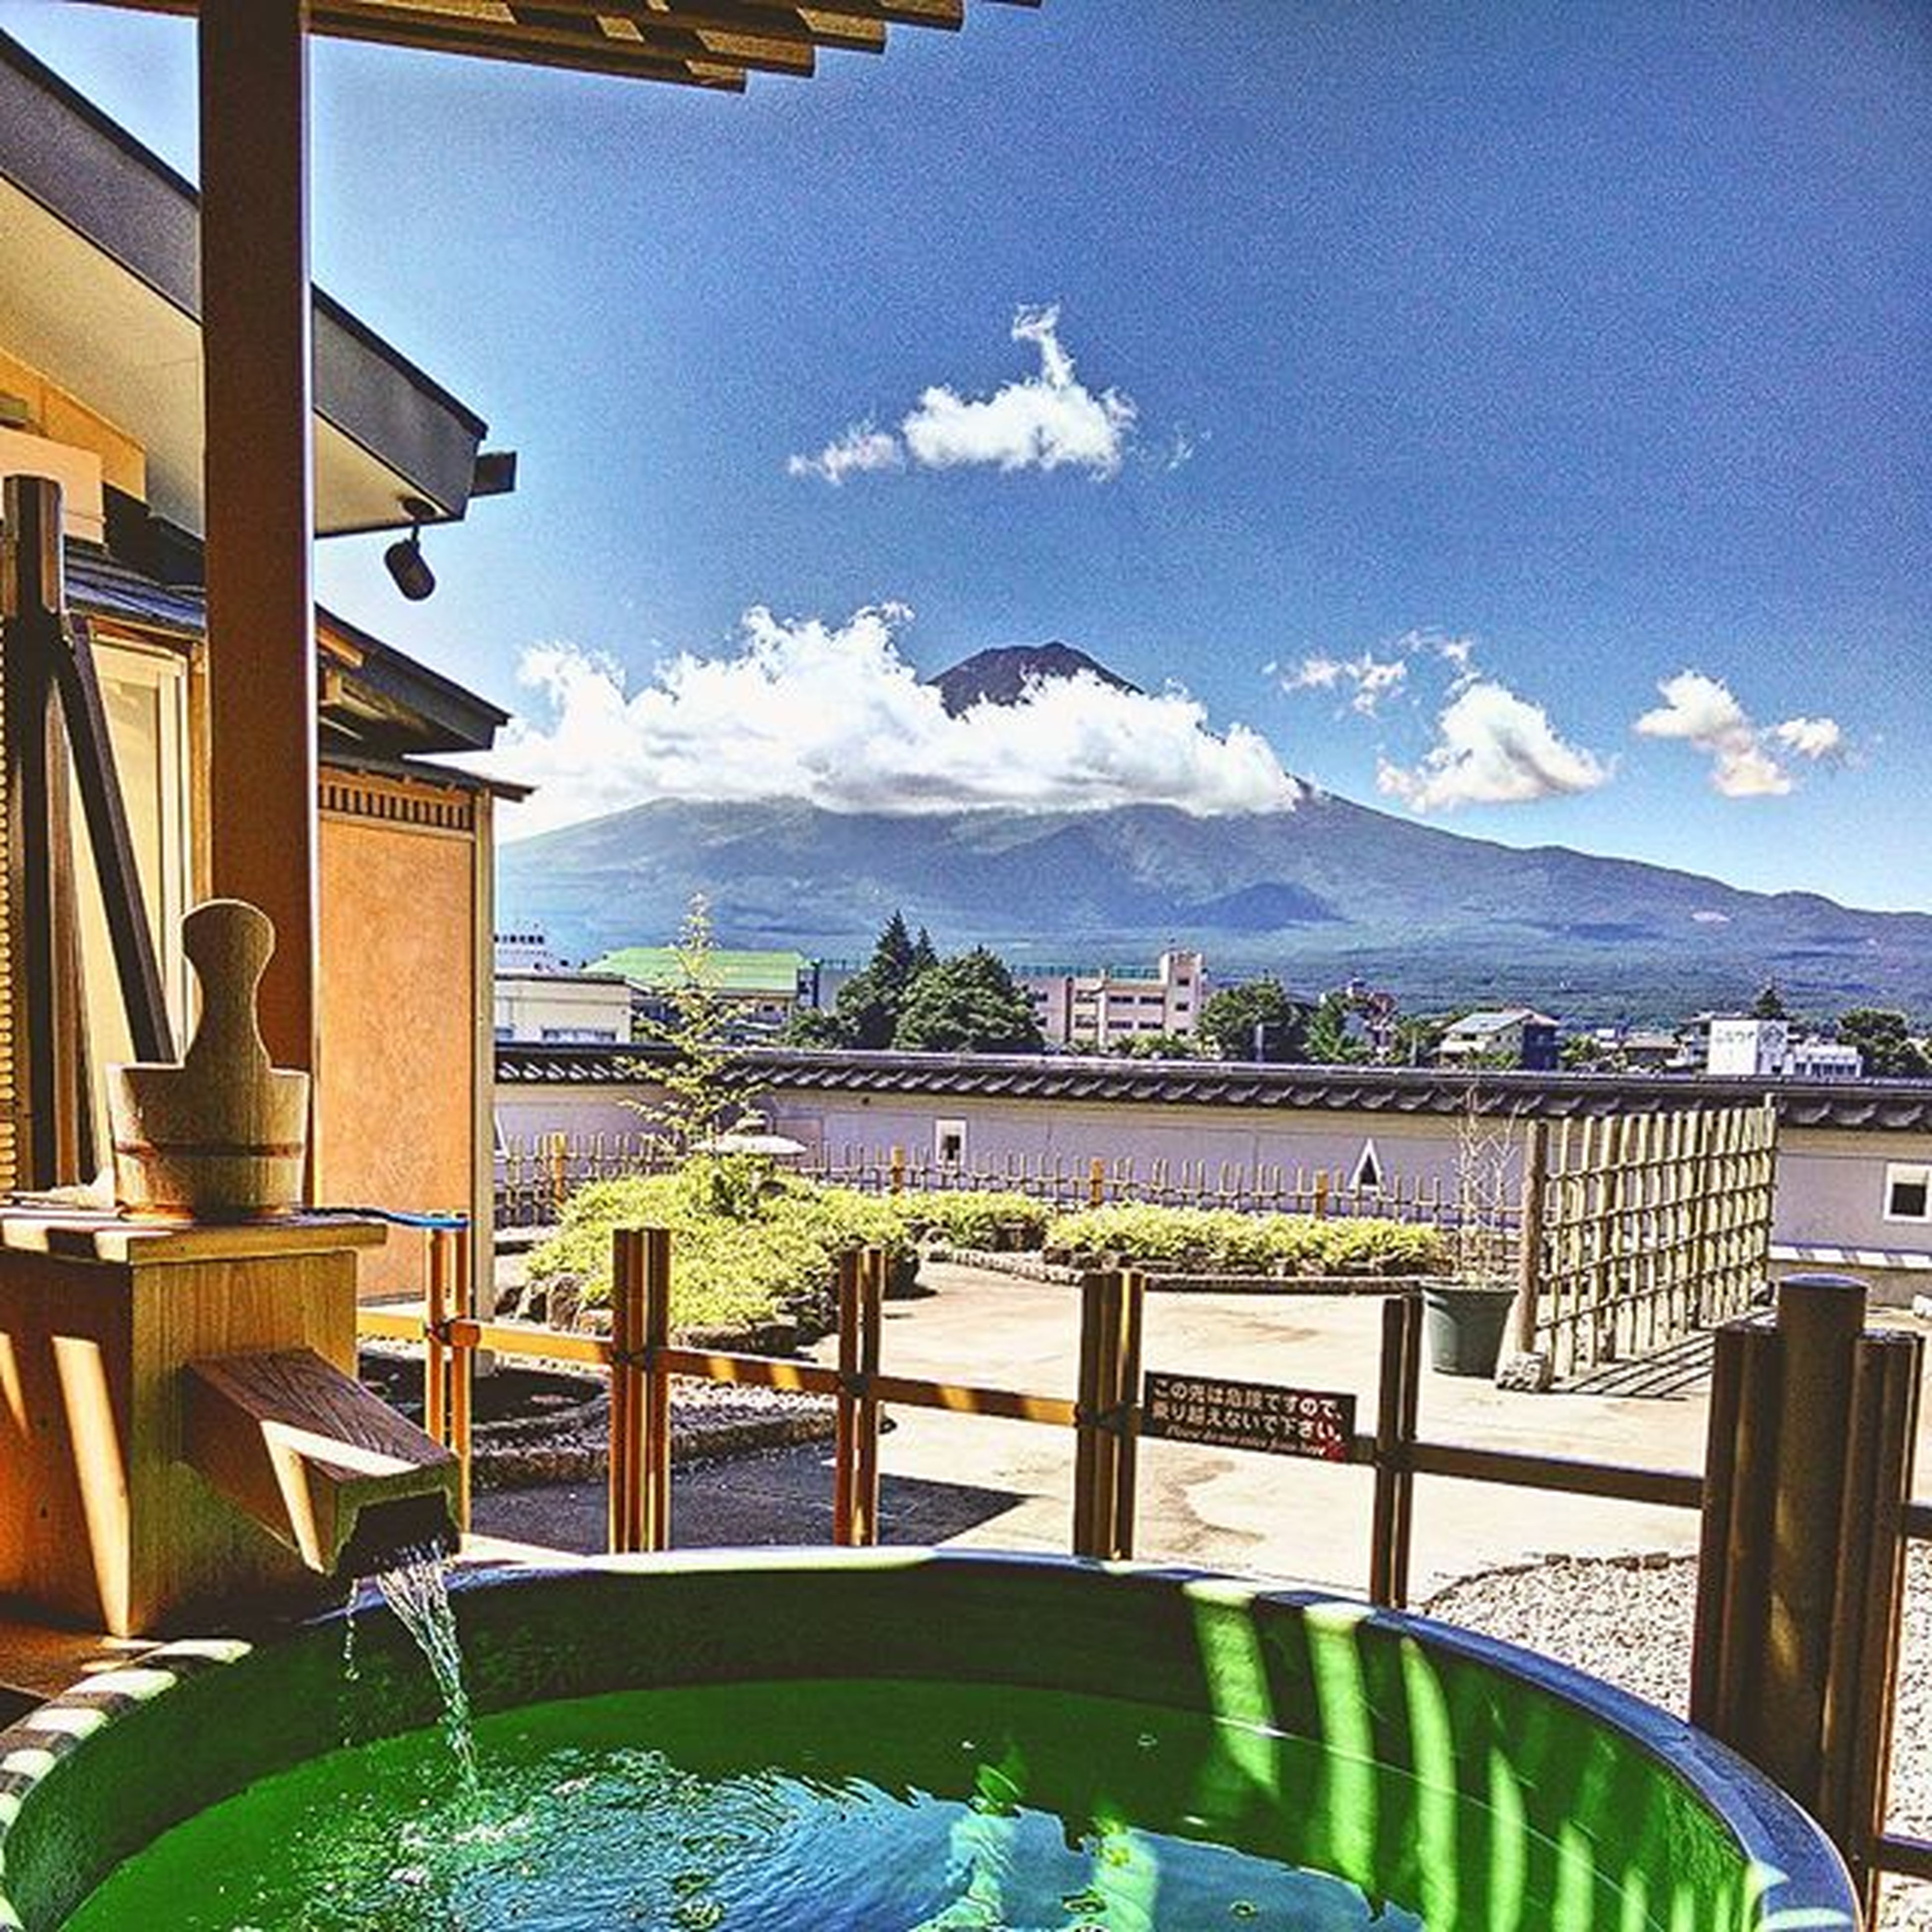 mountain, architecture, sky, built structure, building exterior, cloud - sky, mountain range, table, railing, window, cloud, water, day, indoors, sea, blue, chair, city, balcony, house